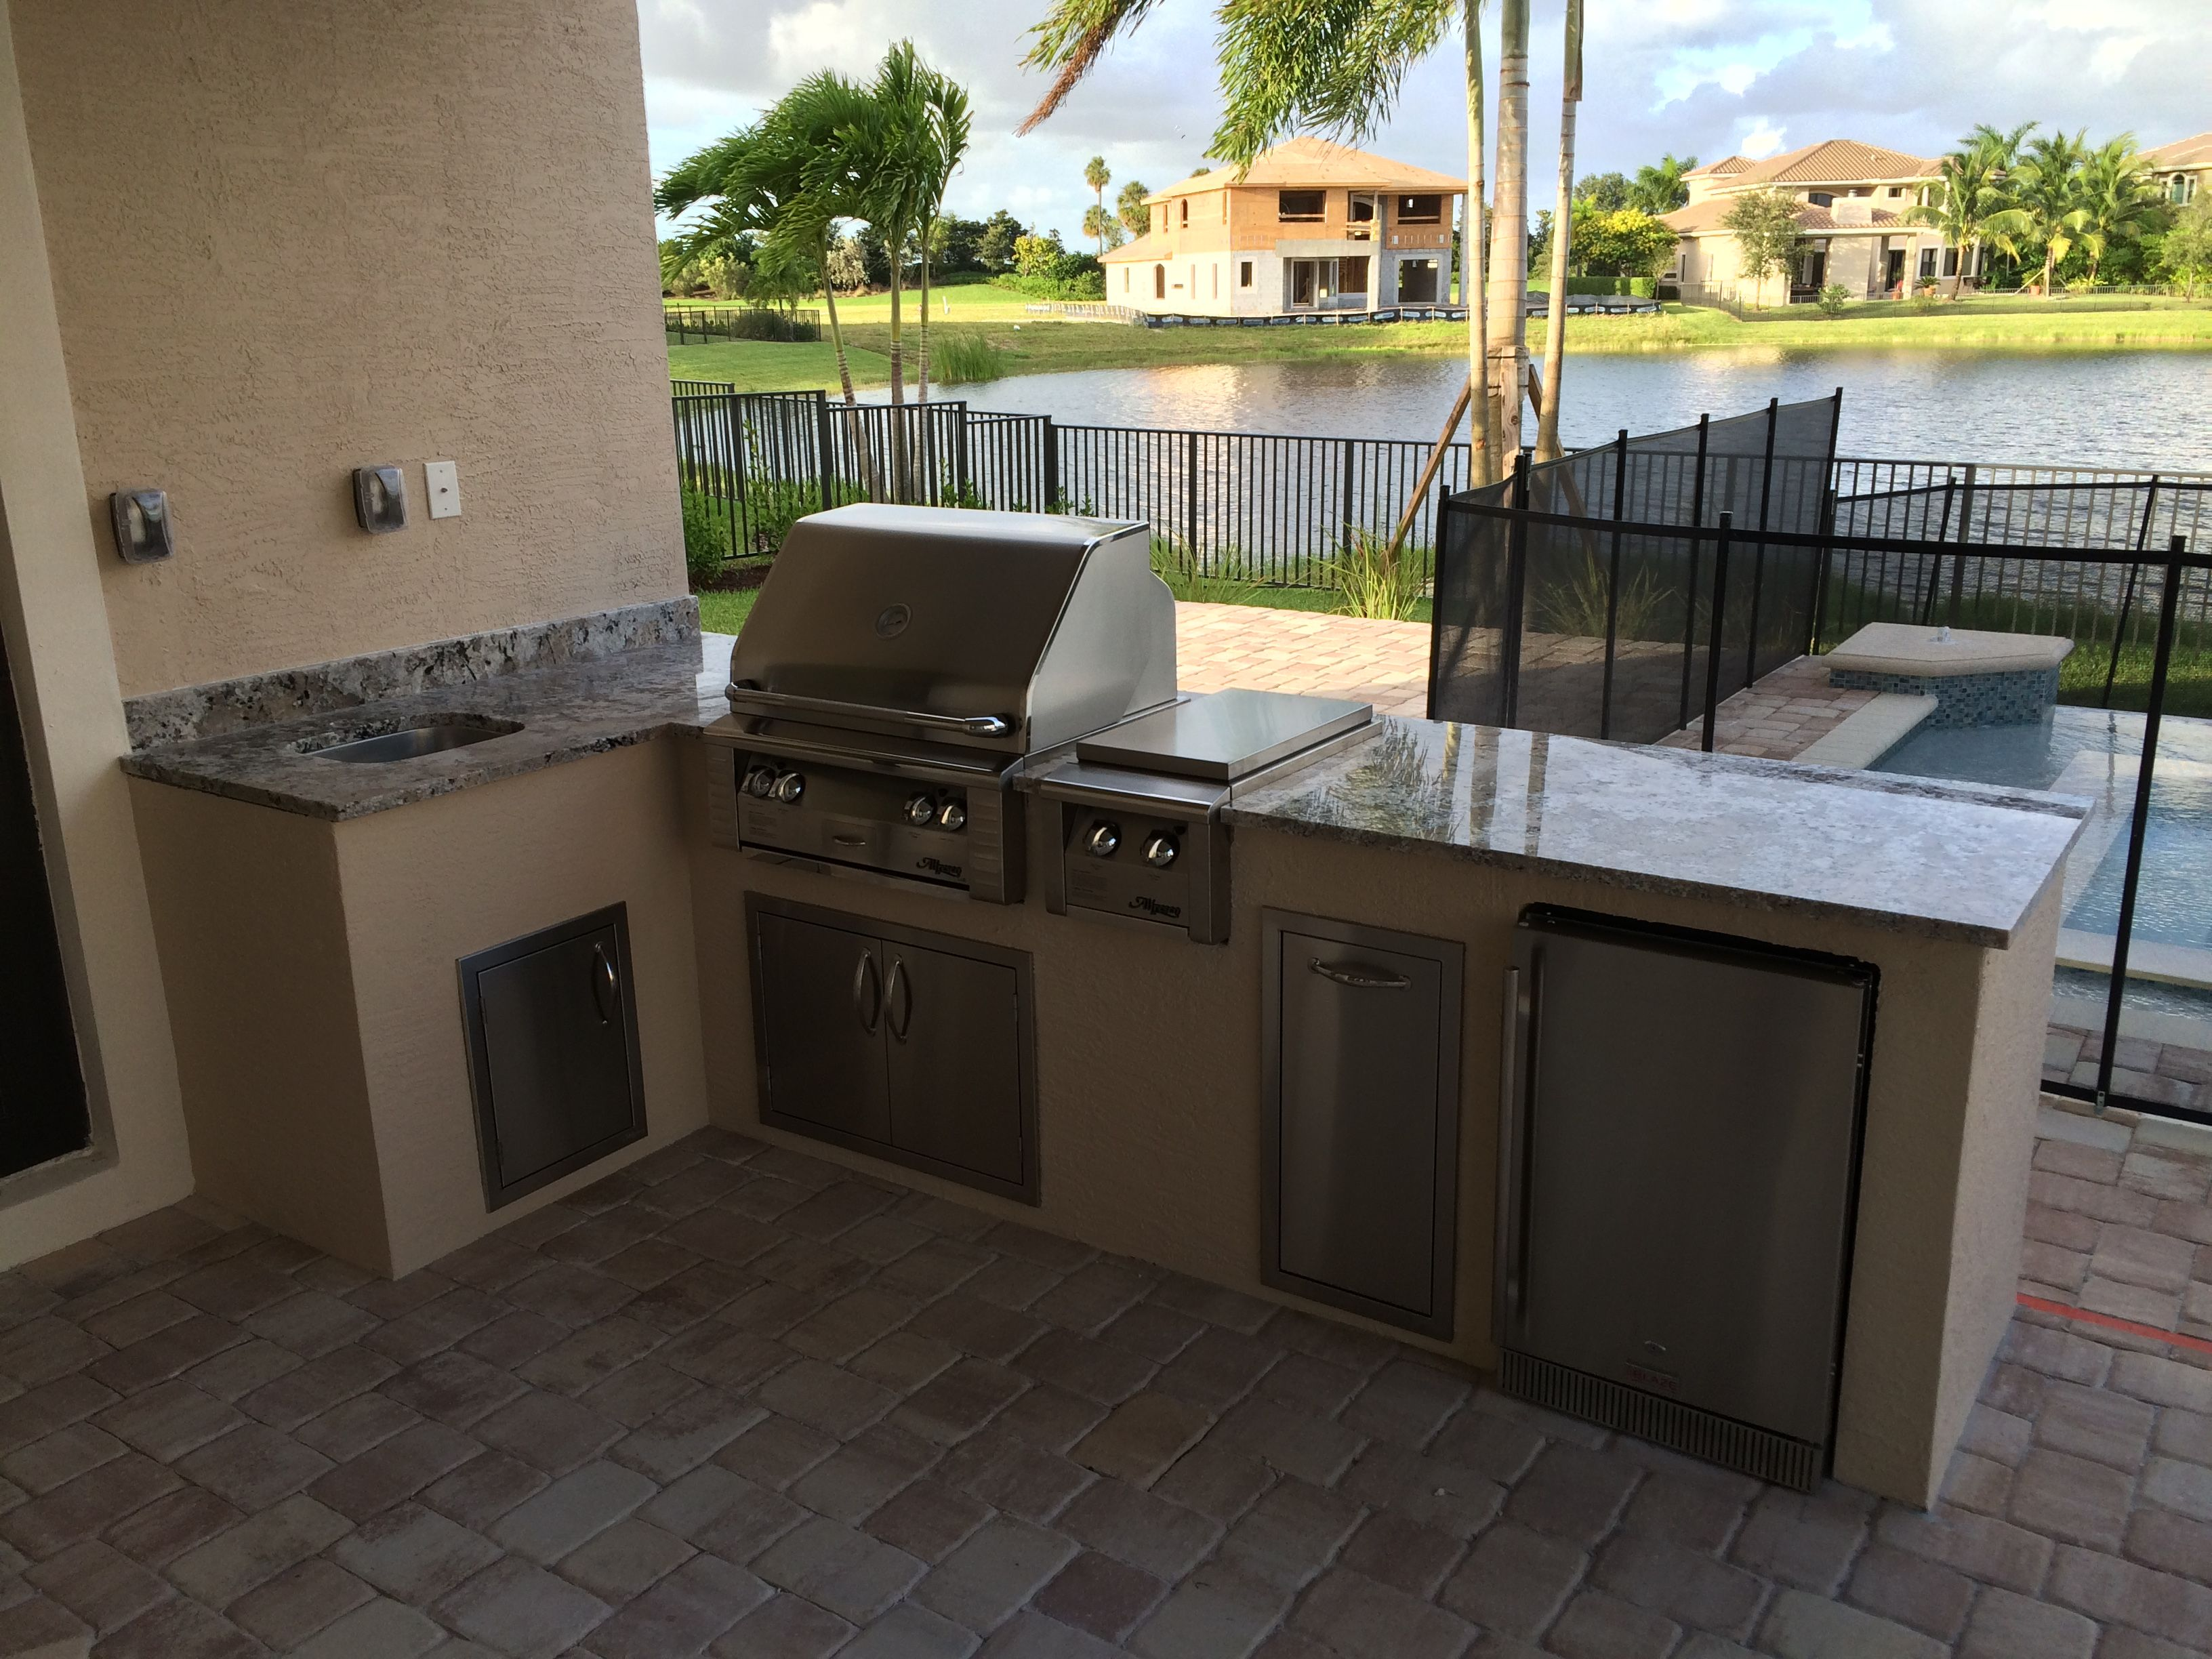 Outdoor Kitchen Refrigerator Summer Kitchen With Alfresco Grill Double Side Burner And